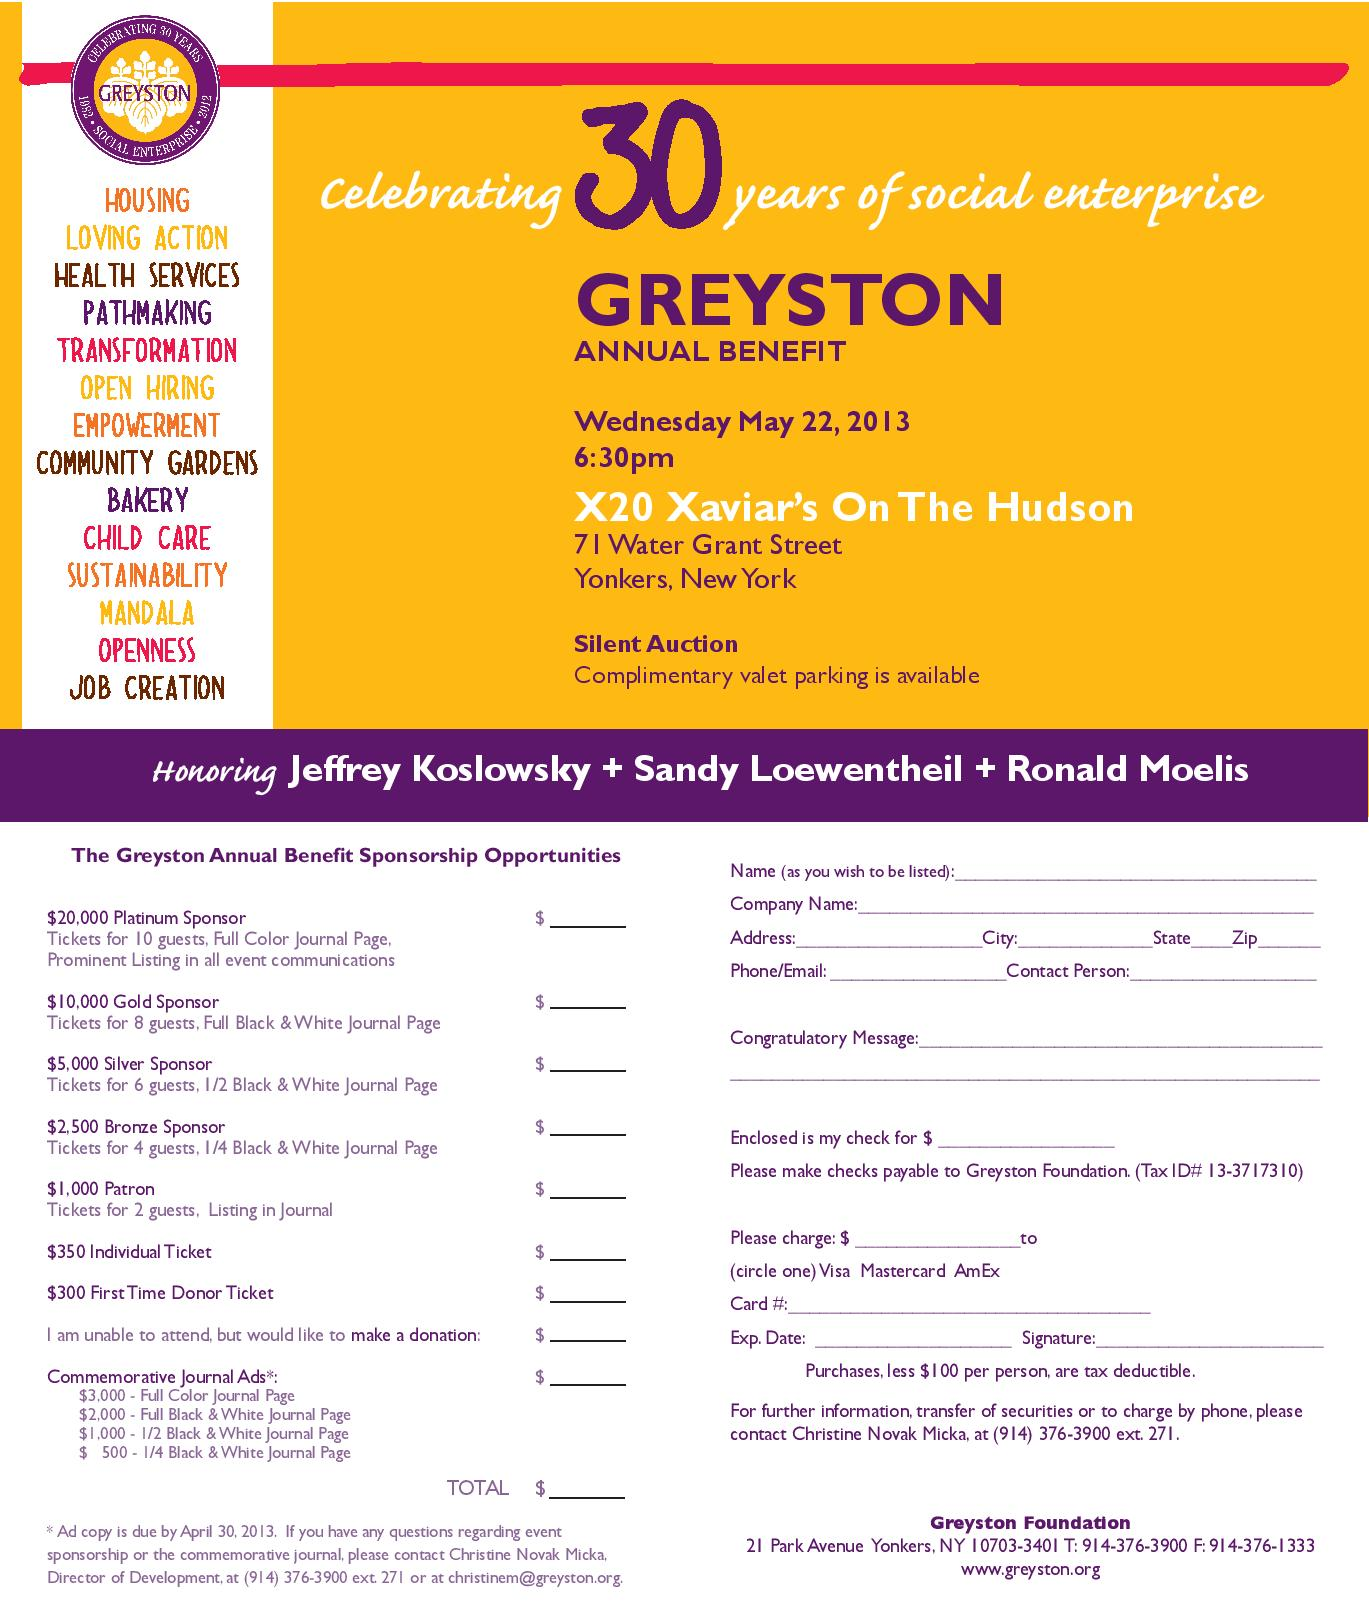 Greyston to Honor Jeffrey Koslowsky